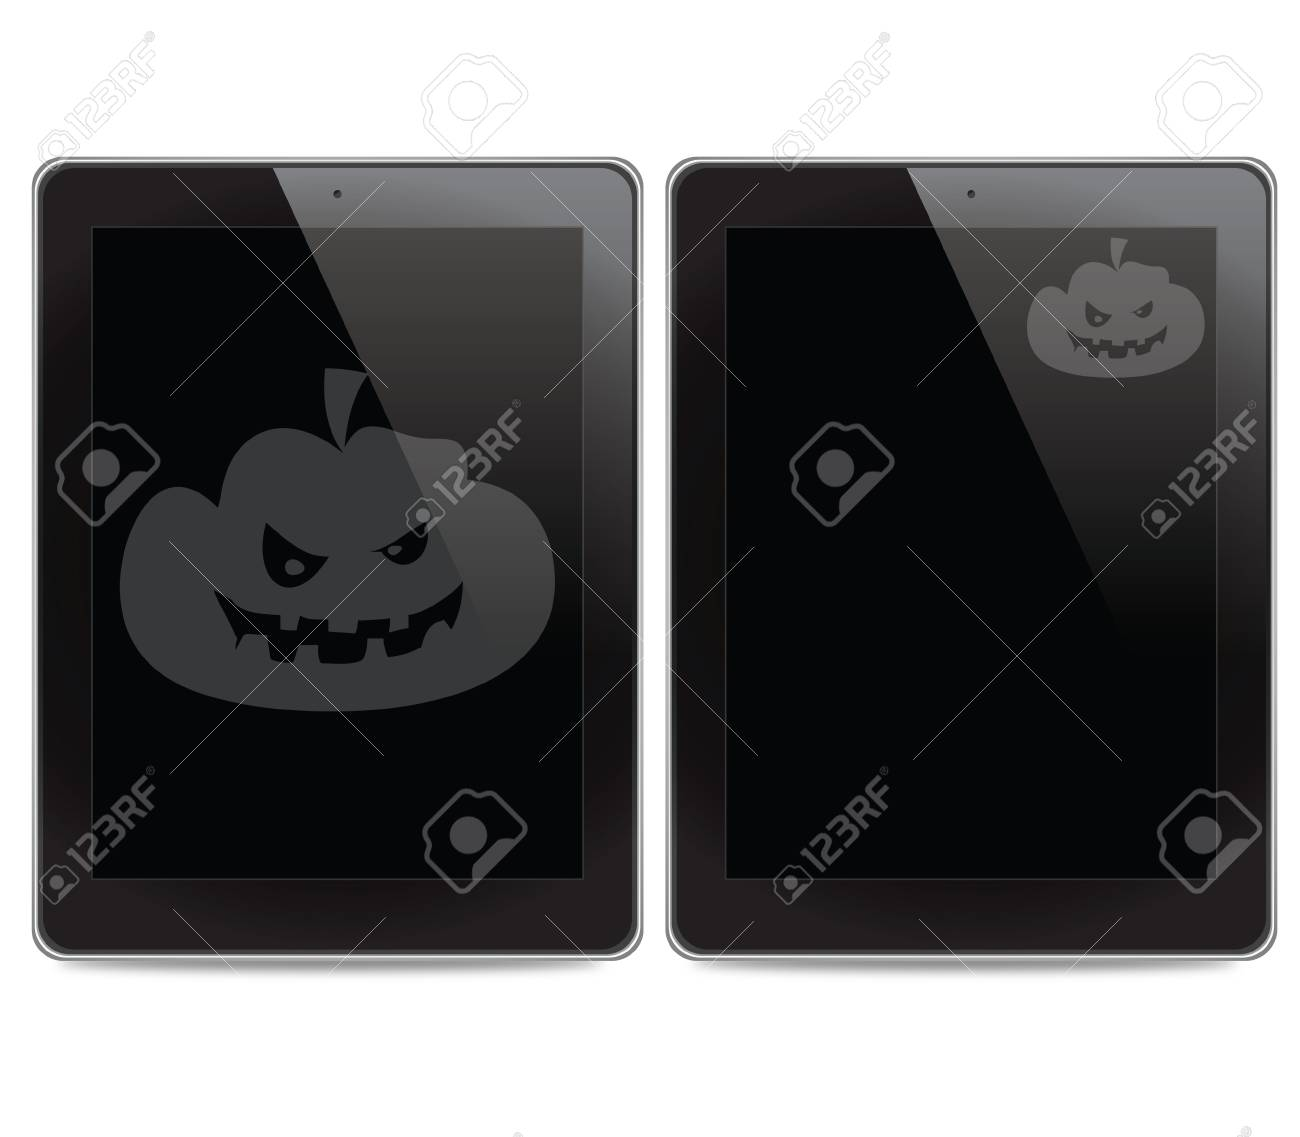 Pumpkin icon on tablet computer background Stock Photo - 15133101